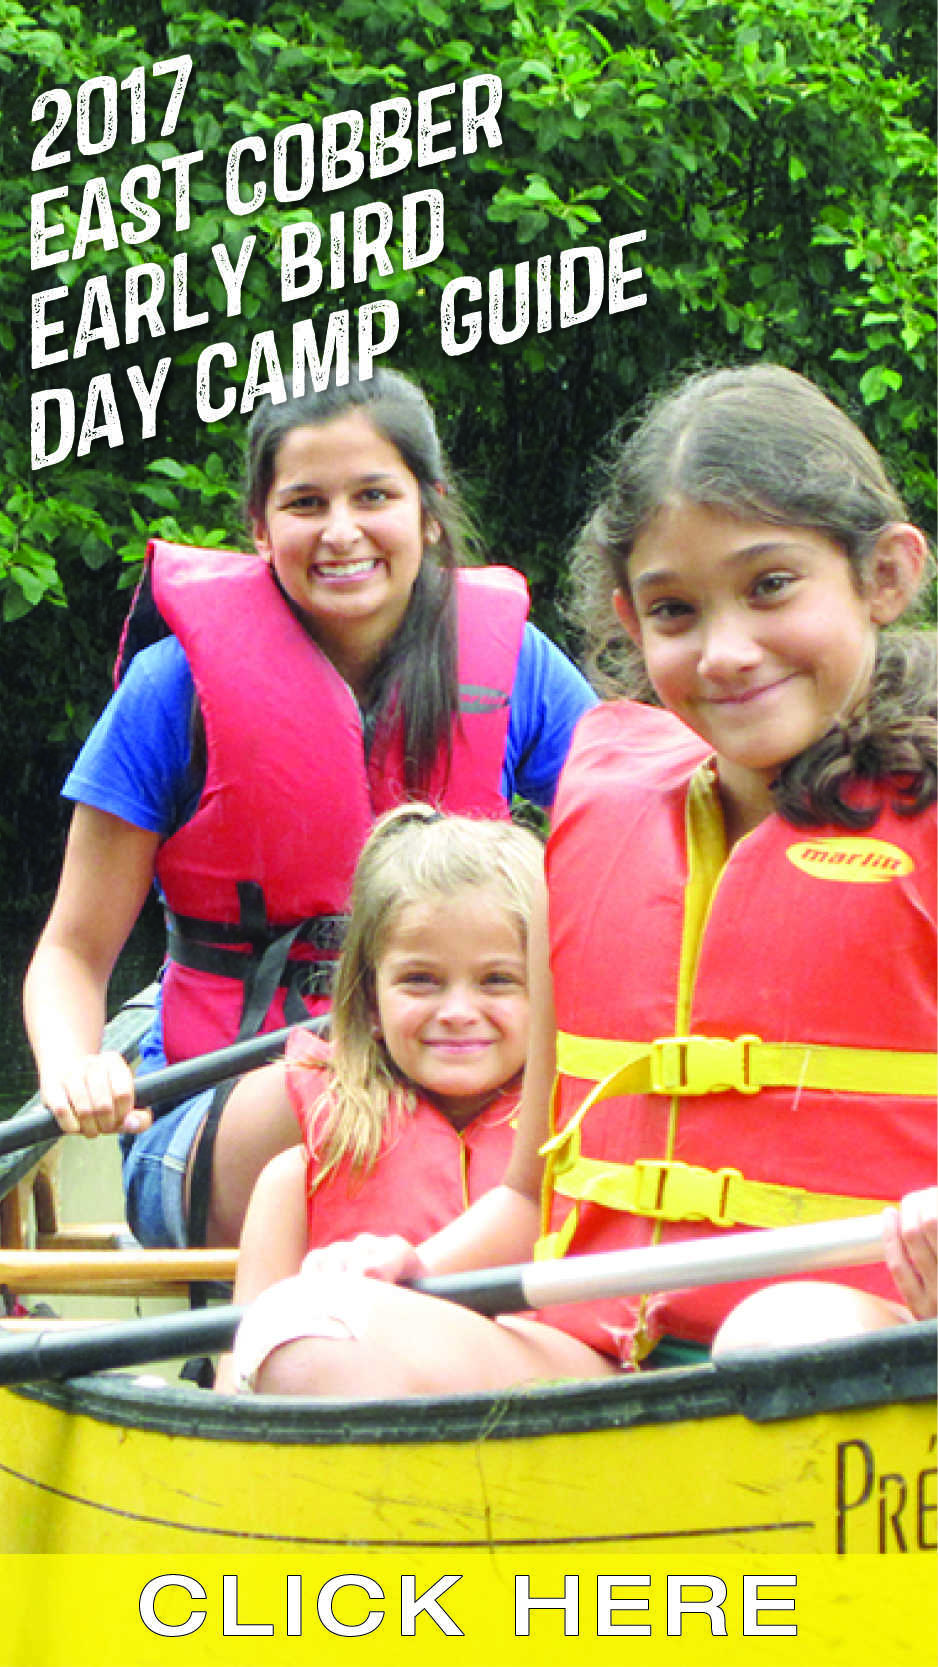 Download the 2017 East Cobber Early Bird Day Camp Guide